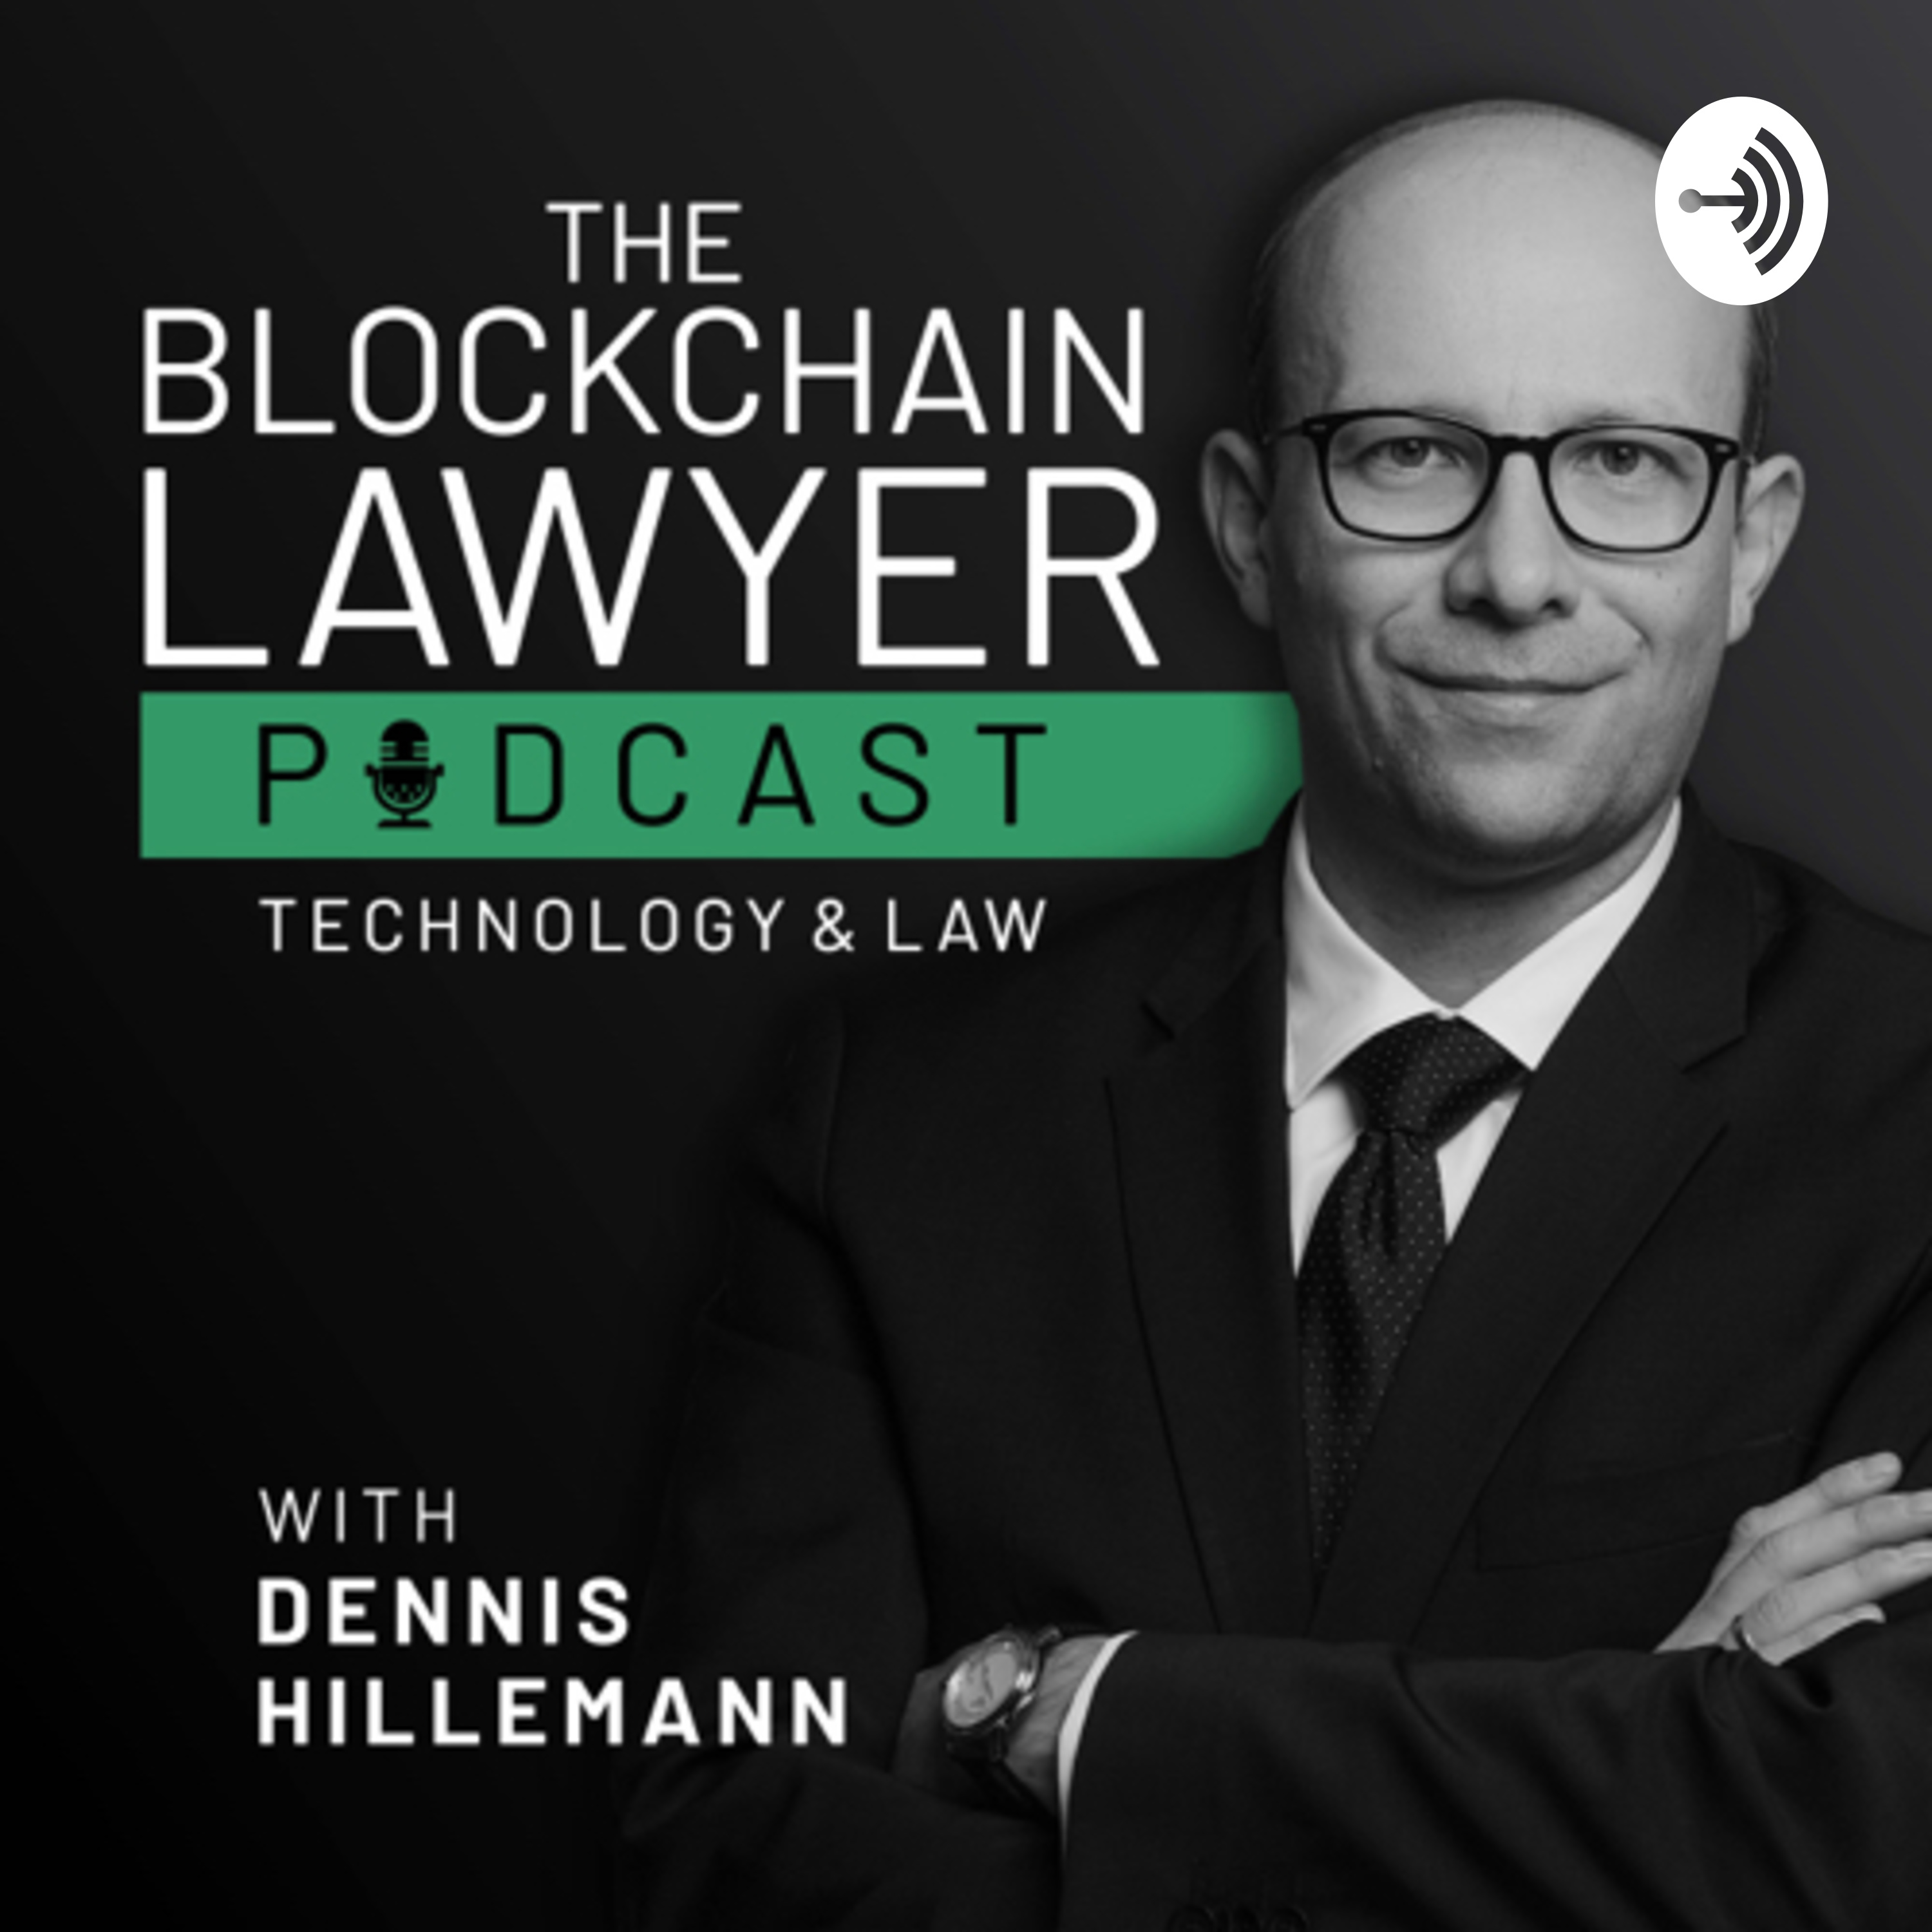 EP. 22: EU-GDPR principles & tension with blockchain technology